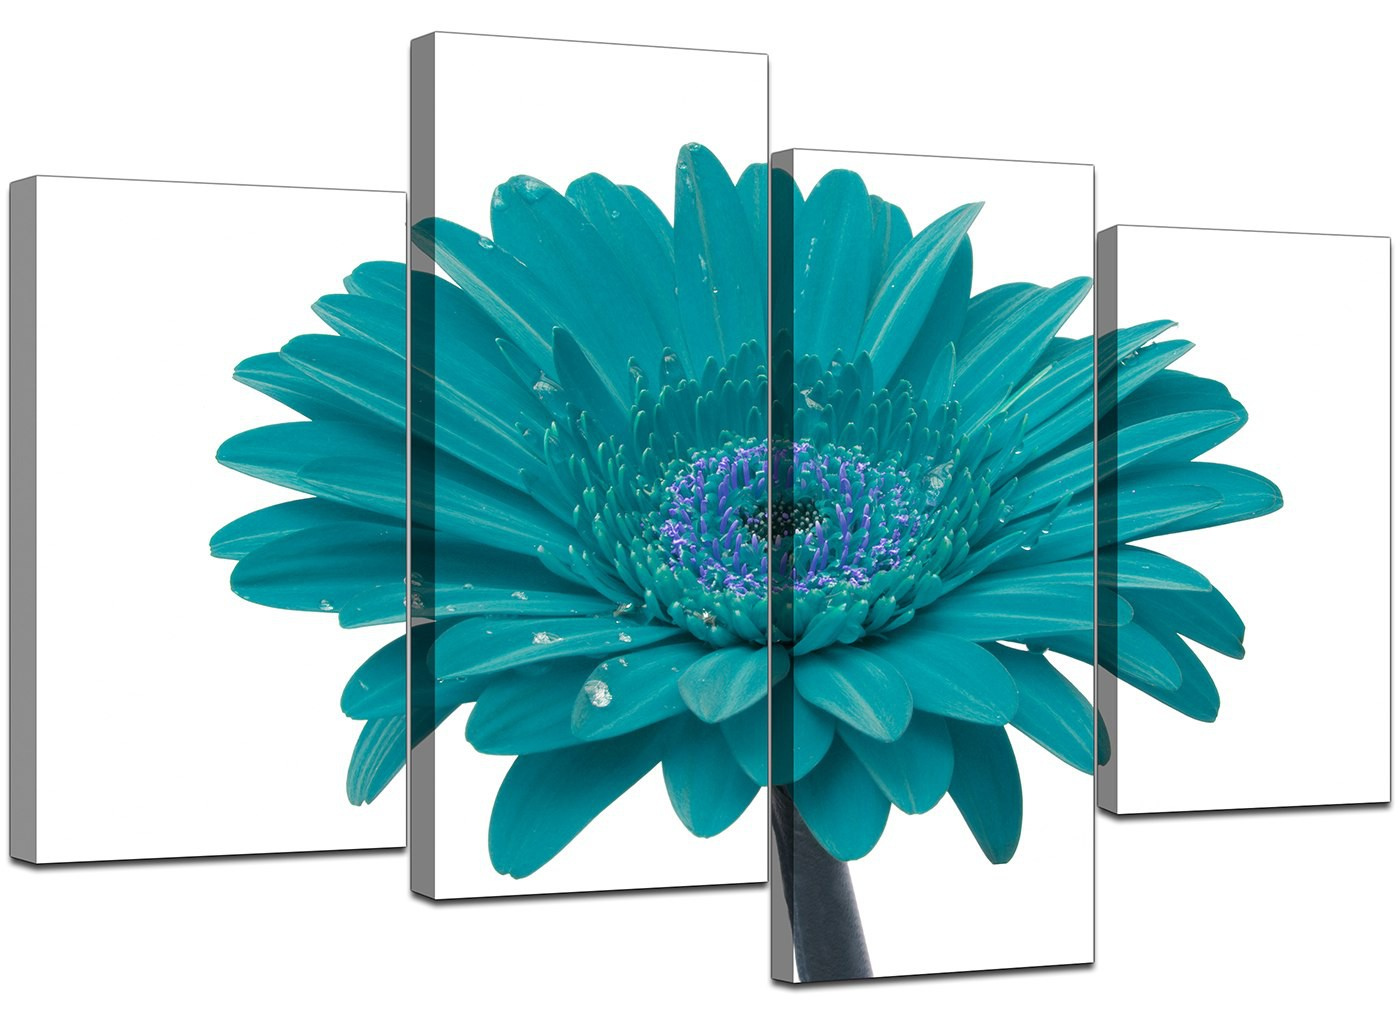 Canvas Wall Art Of A Flower In Teal For Your Living Room